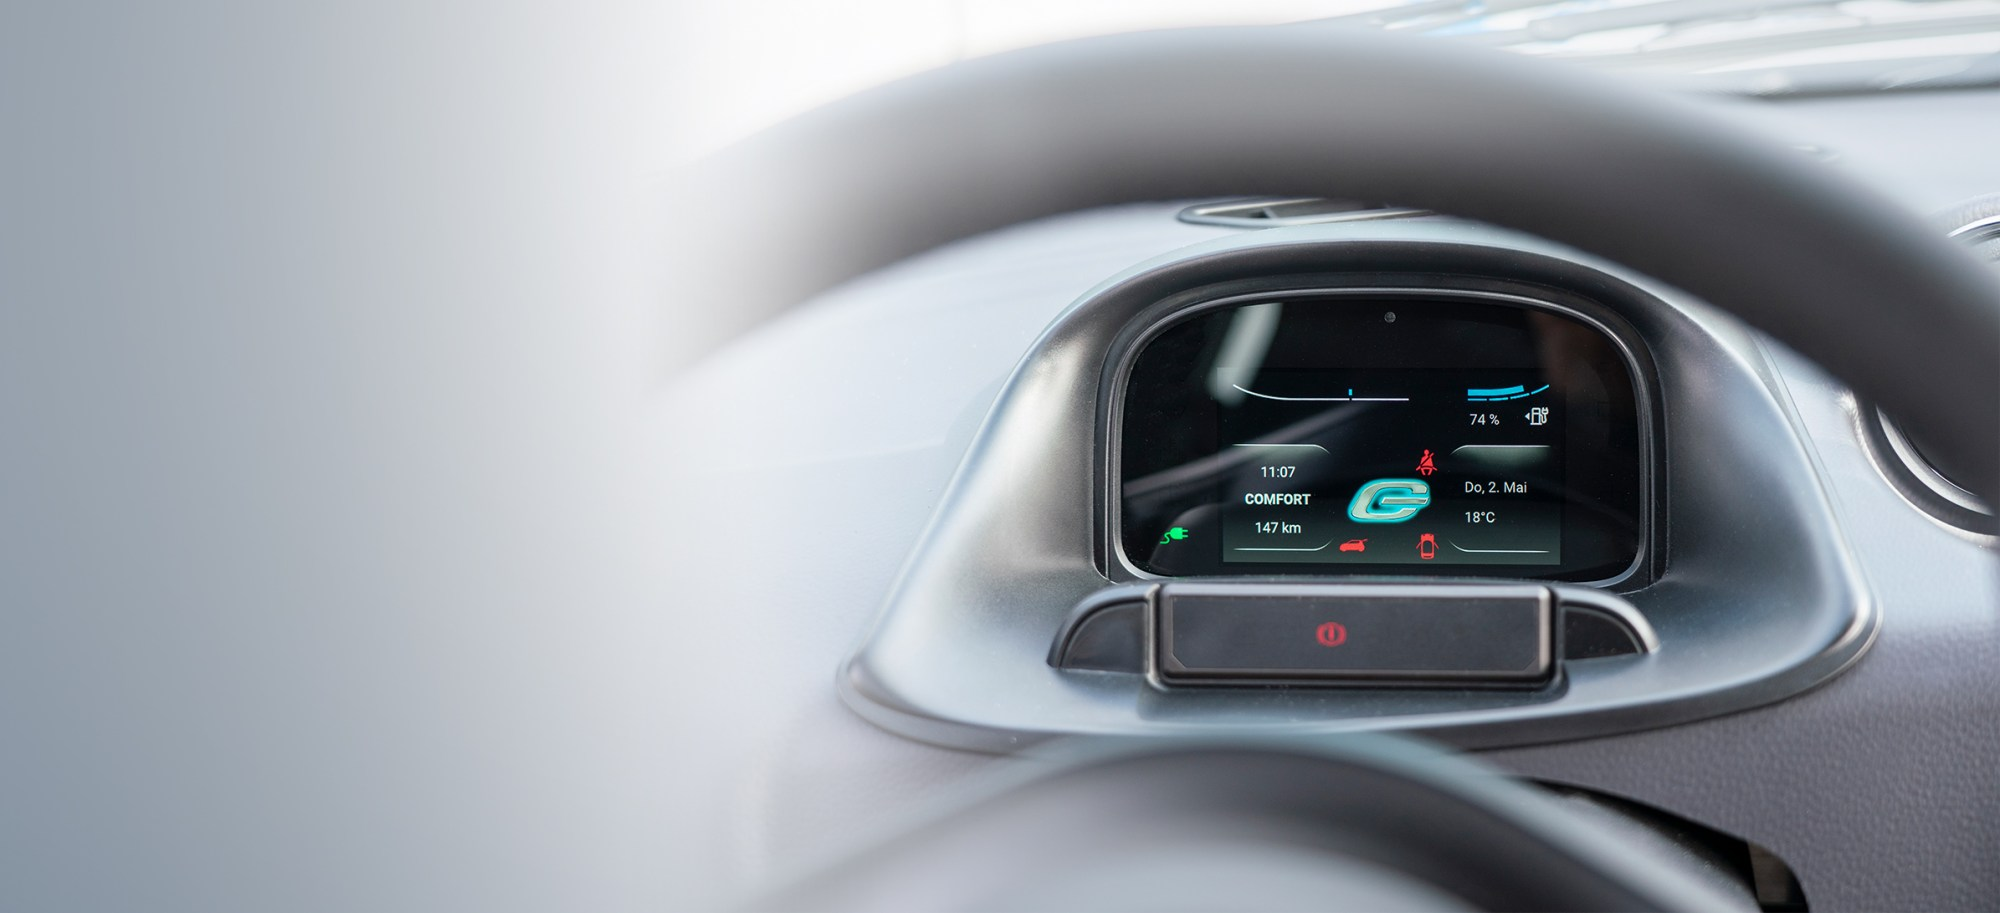 hight resolution of go mobile has decided to rely on our smart dashboard for the new electric city car